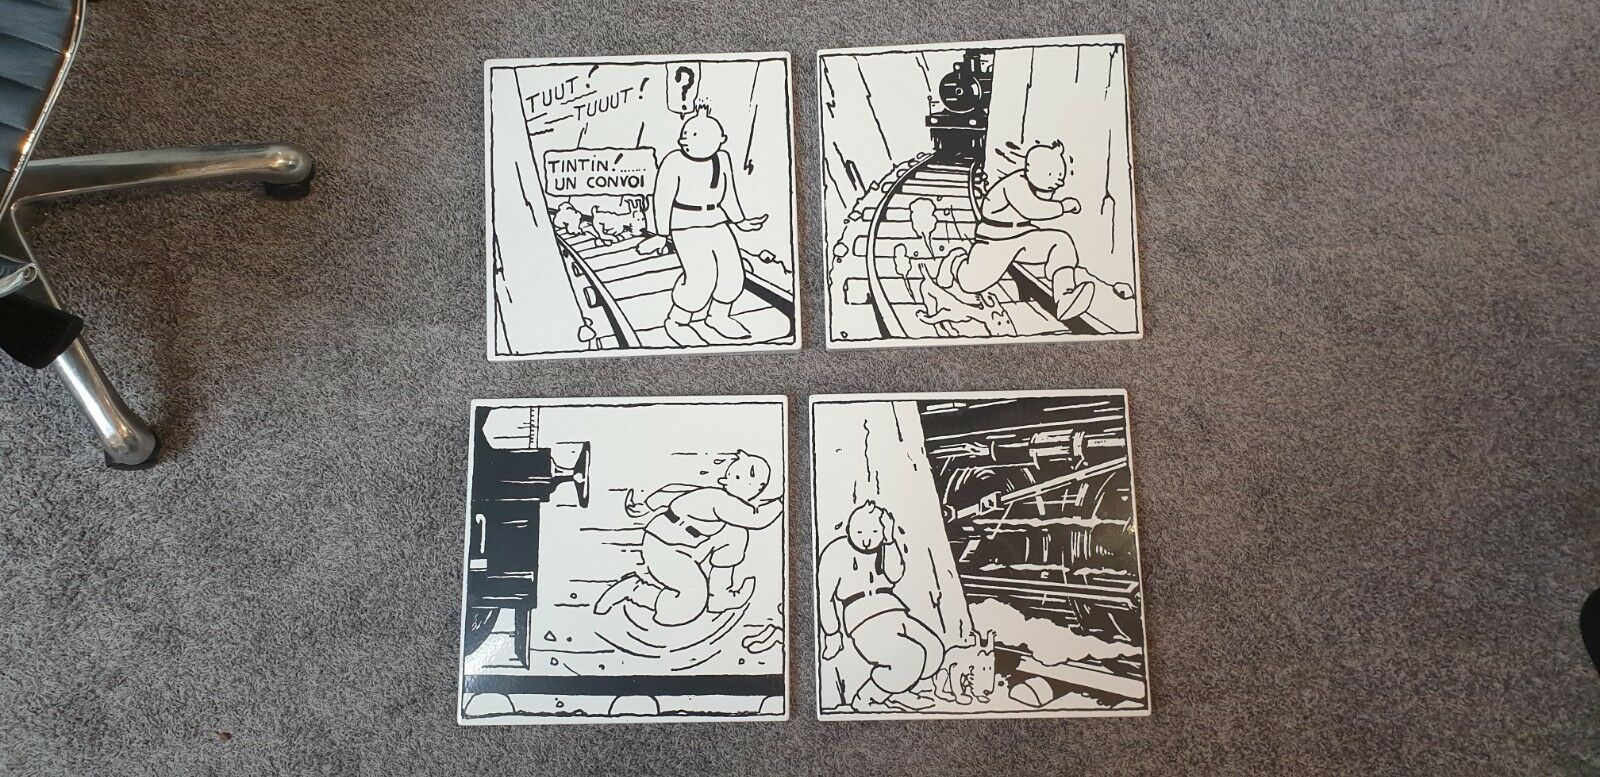 TINTIN HERGE * PLAQUES EMAILLEES AU PAYS DES SOVIETS * EMAILLERIE BELGE